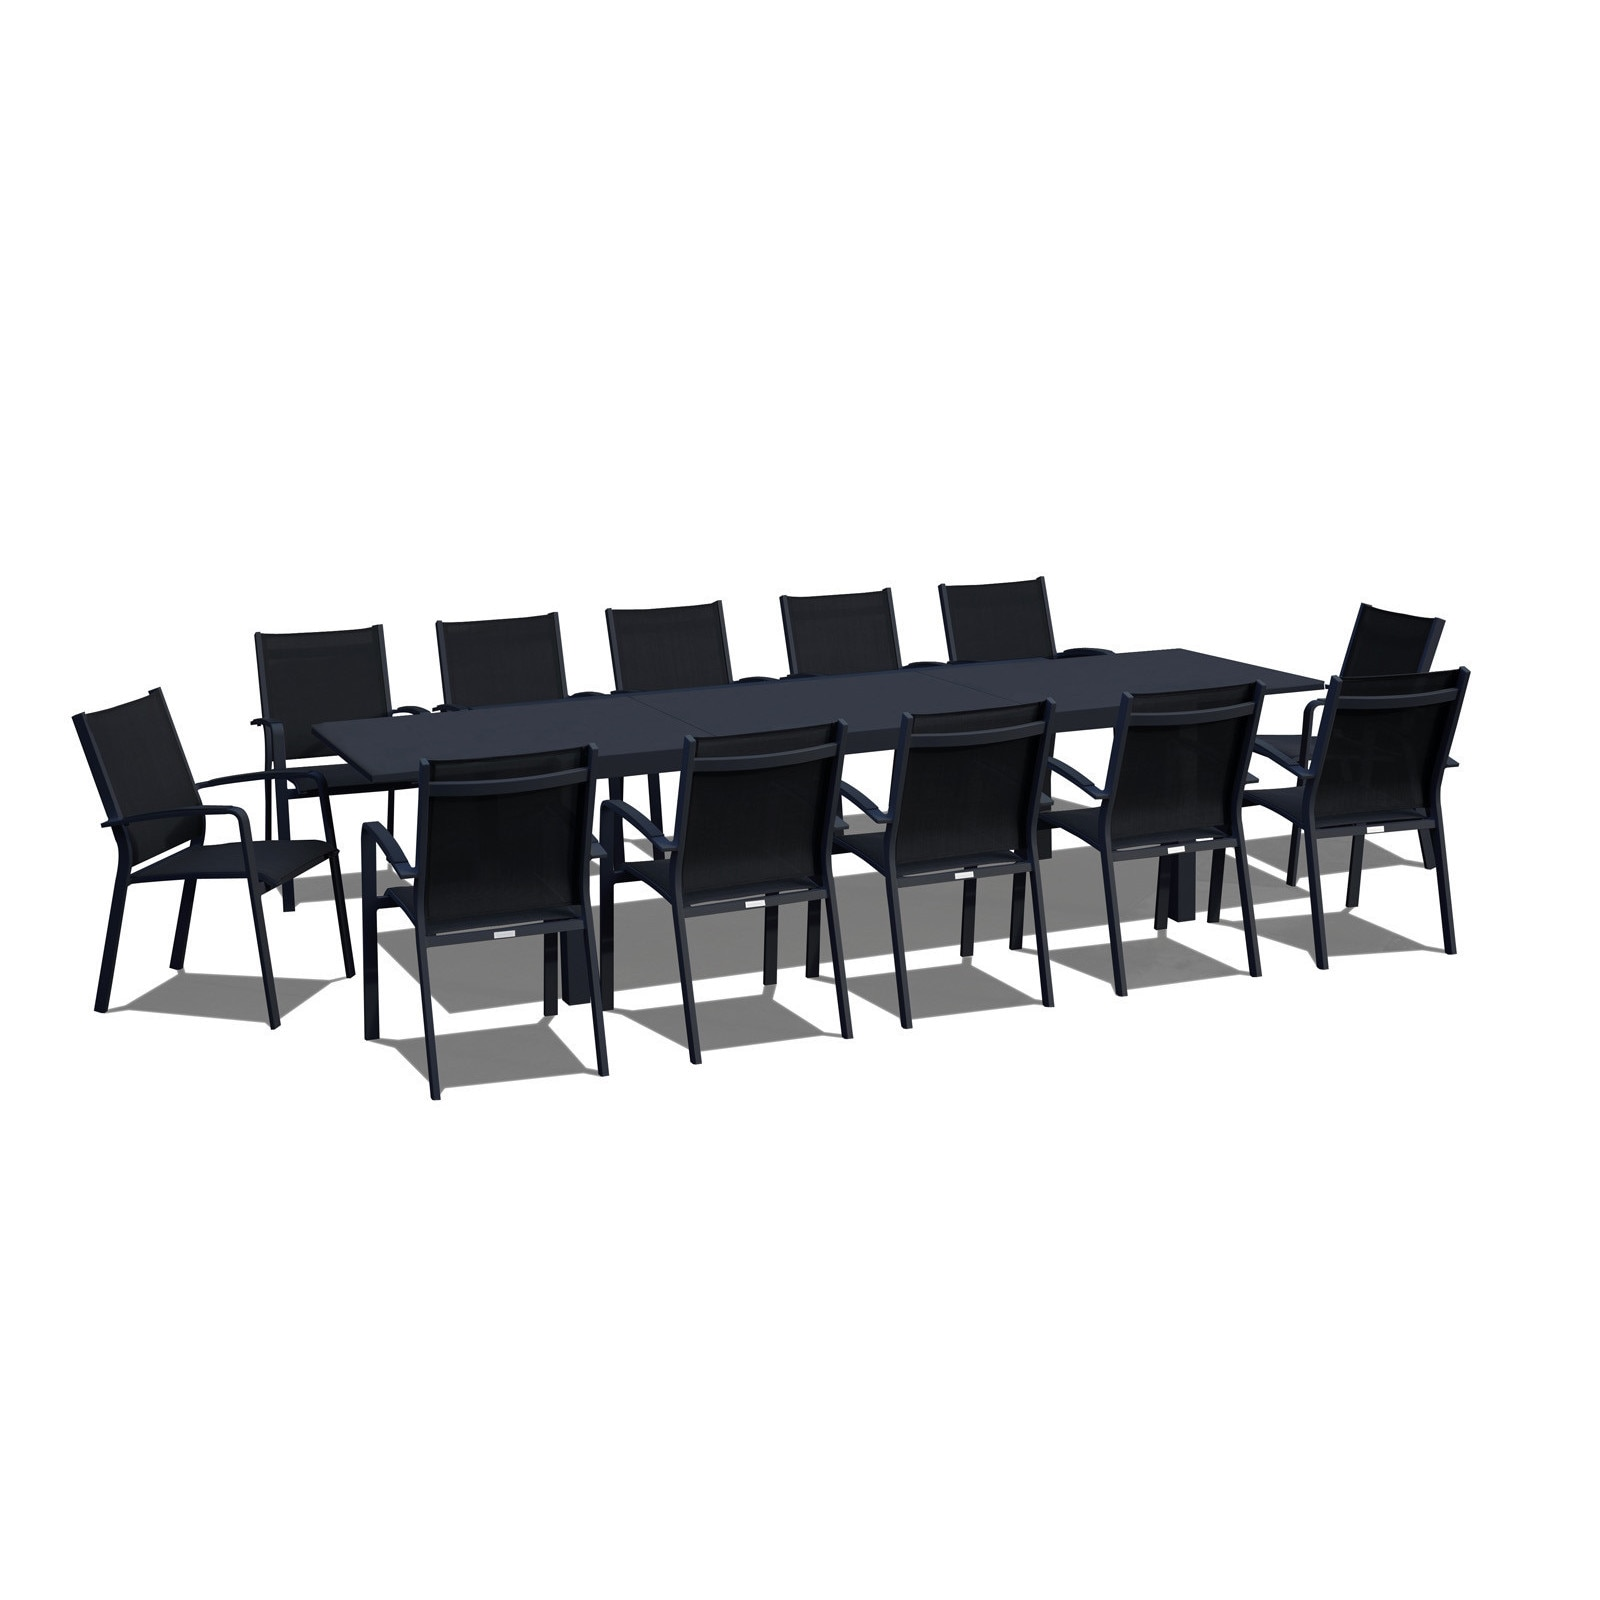 Urban Furnishing 13 Piece Extendable Modern Outdoor Patio Dining Set Black On Black Overstock 14787865